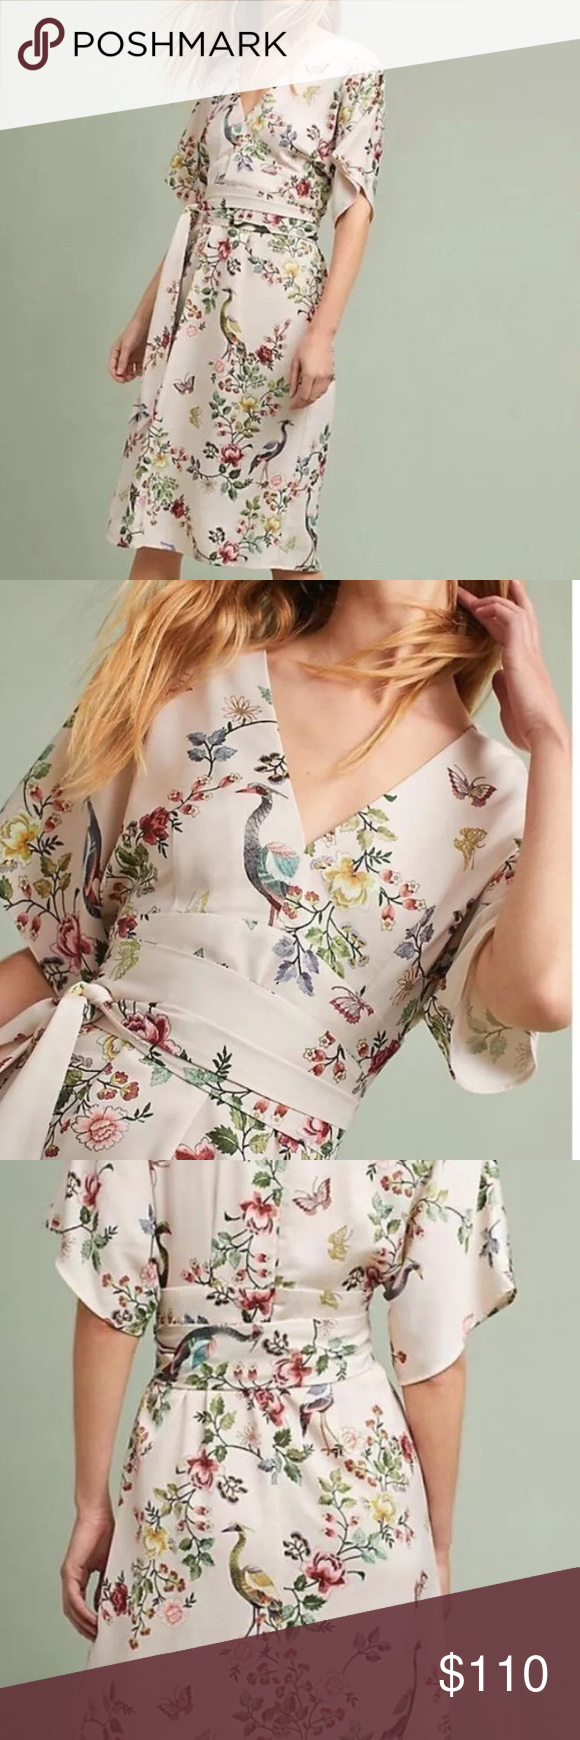 a872ae2ad16e4 Anthropologie DRA Las Angeles Avian kimono 4 NWT This is a brand new item,  purchased on line and it does not fit me. Gorgeous dress.